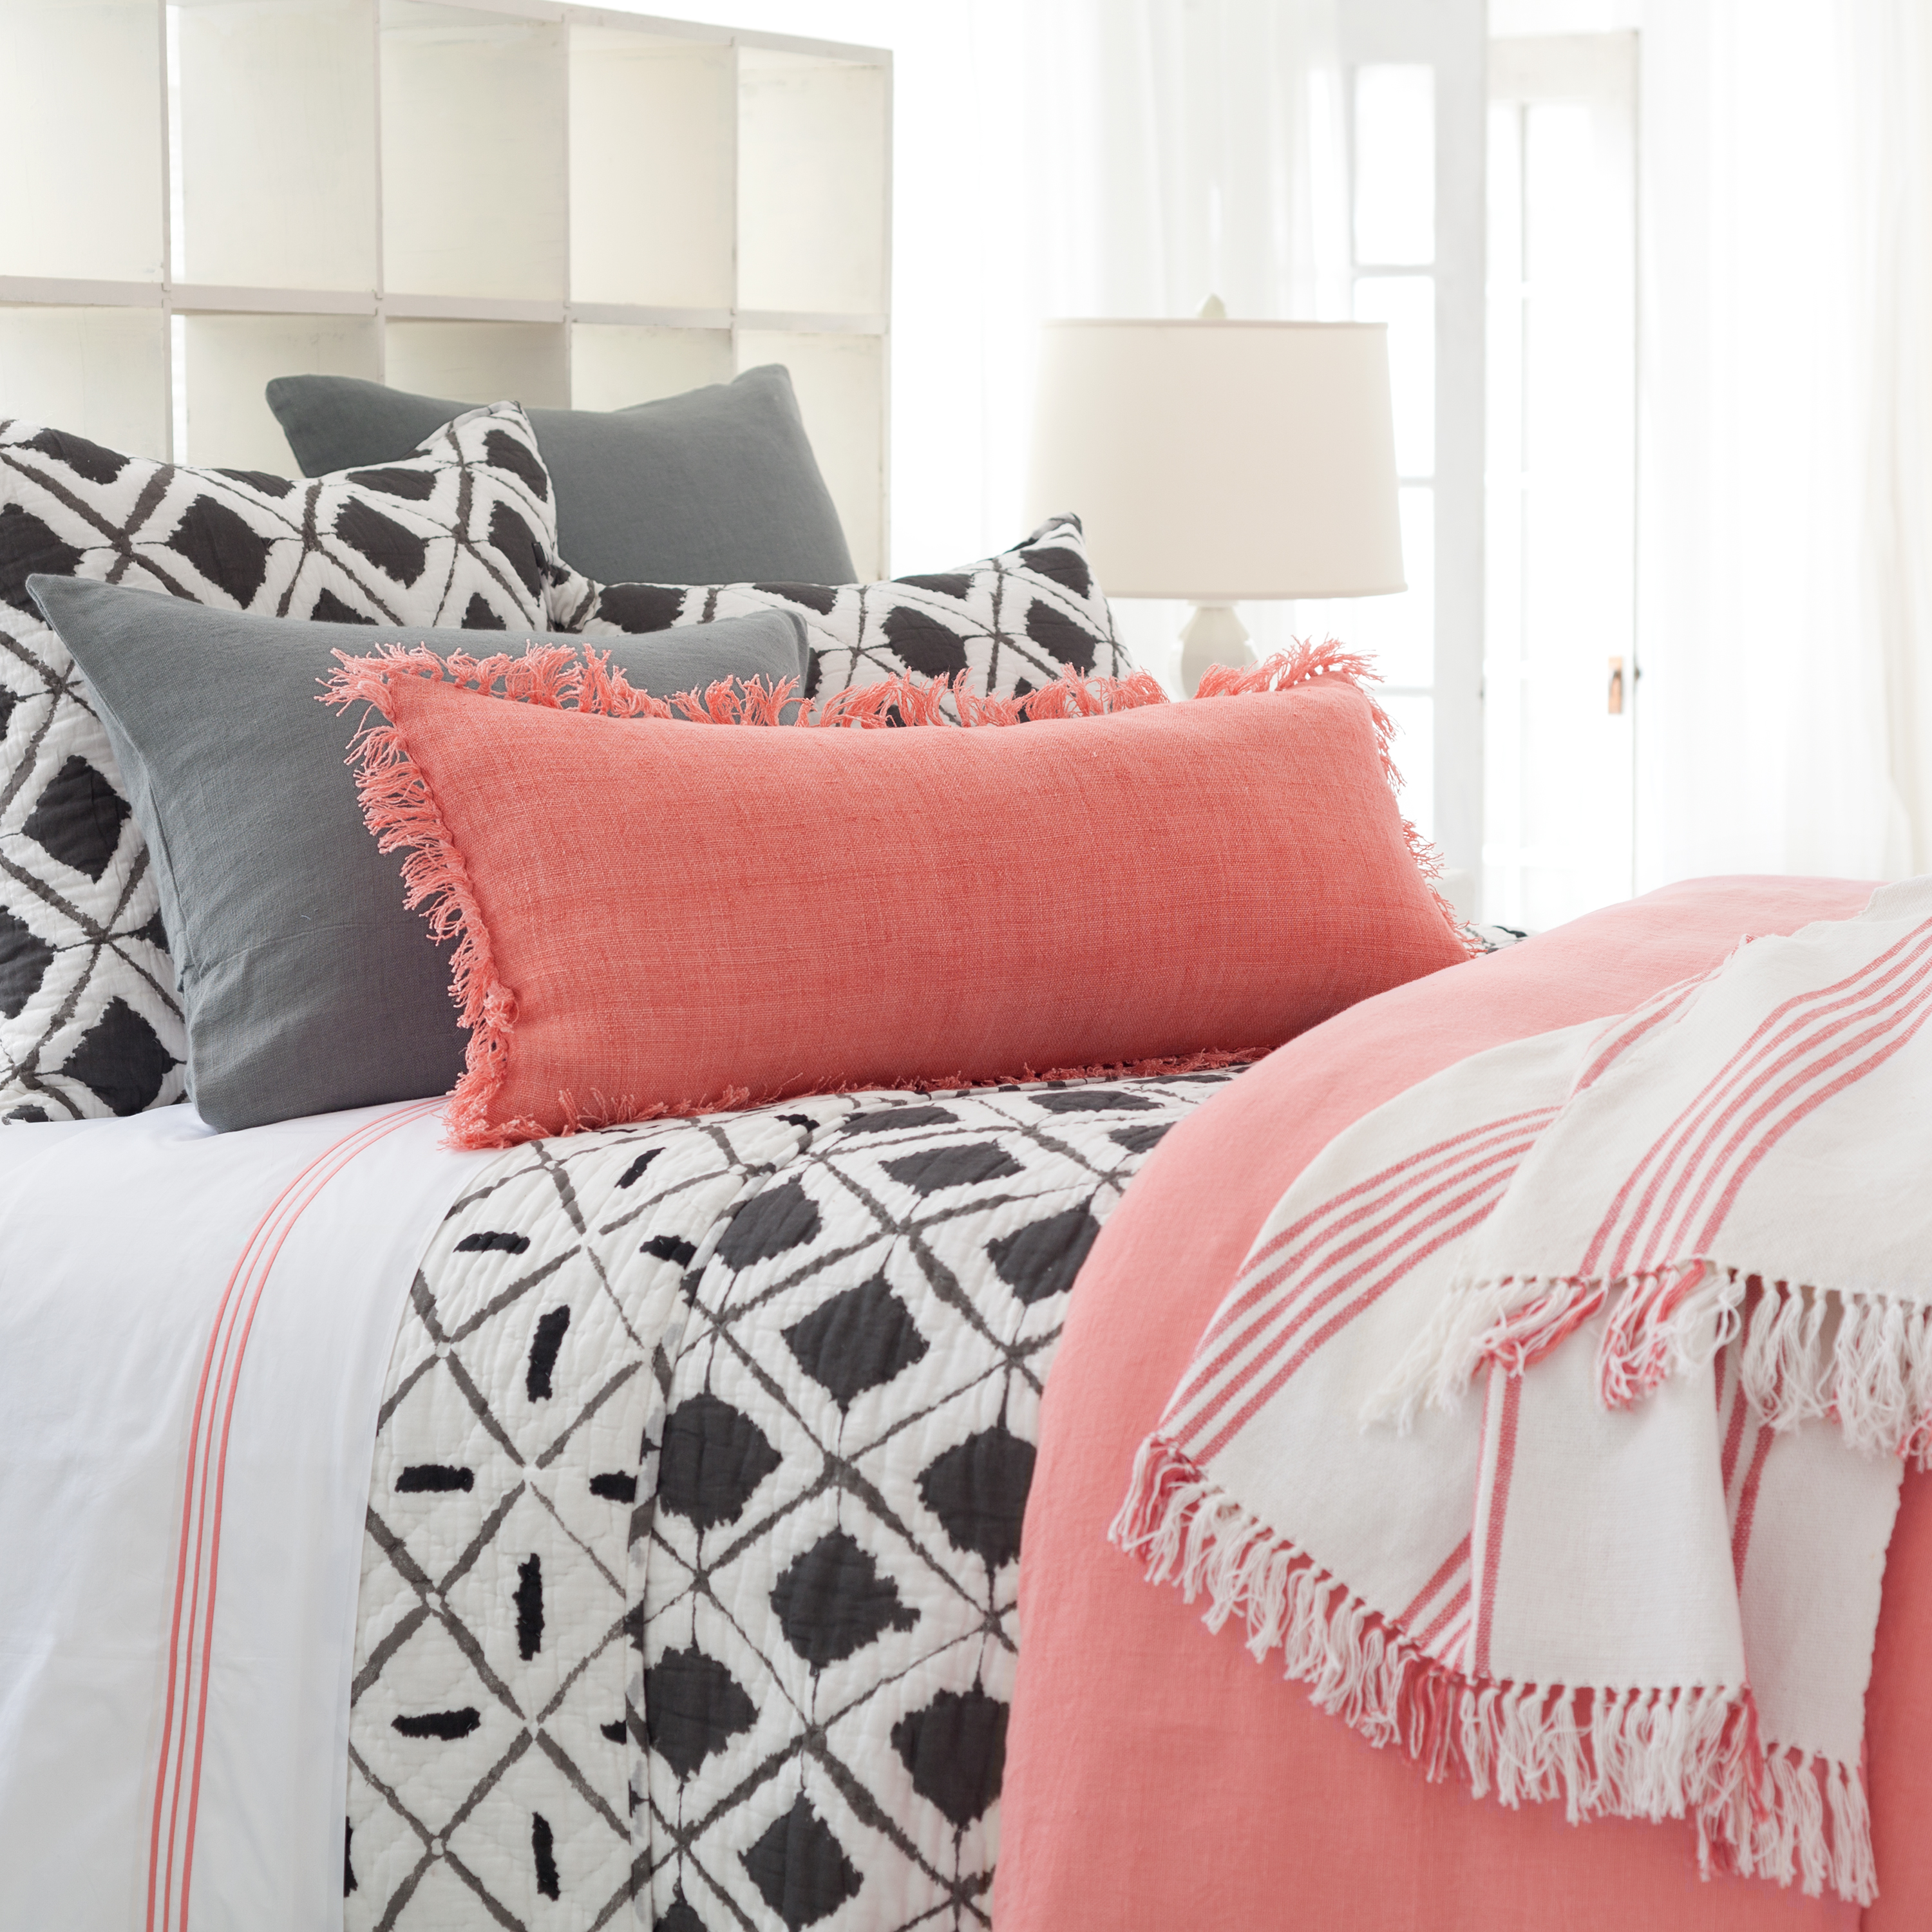 let's get graphic bold prints for the bedroom - narayastonewashed